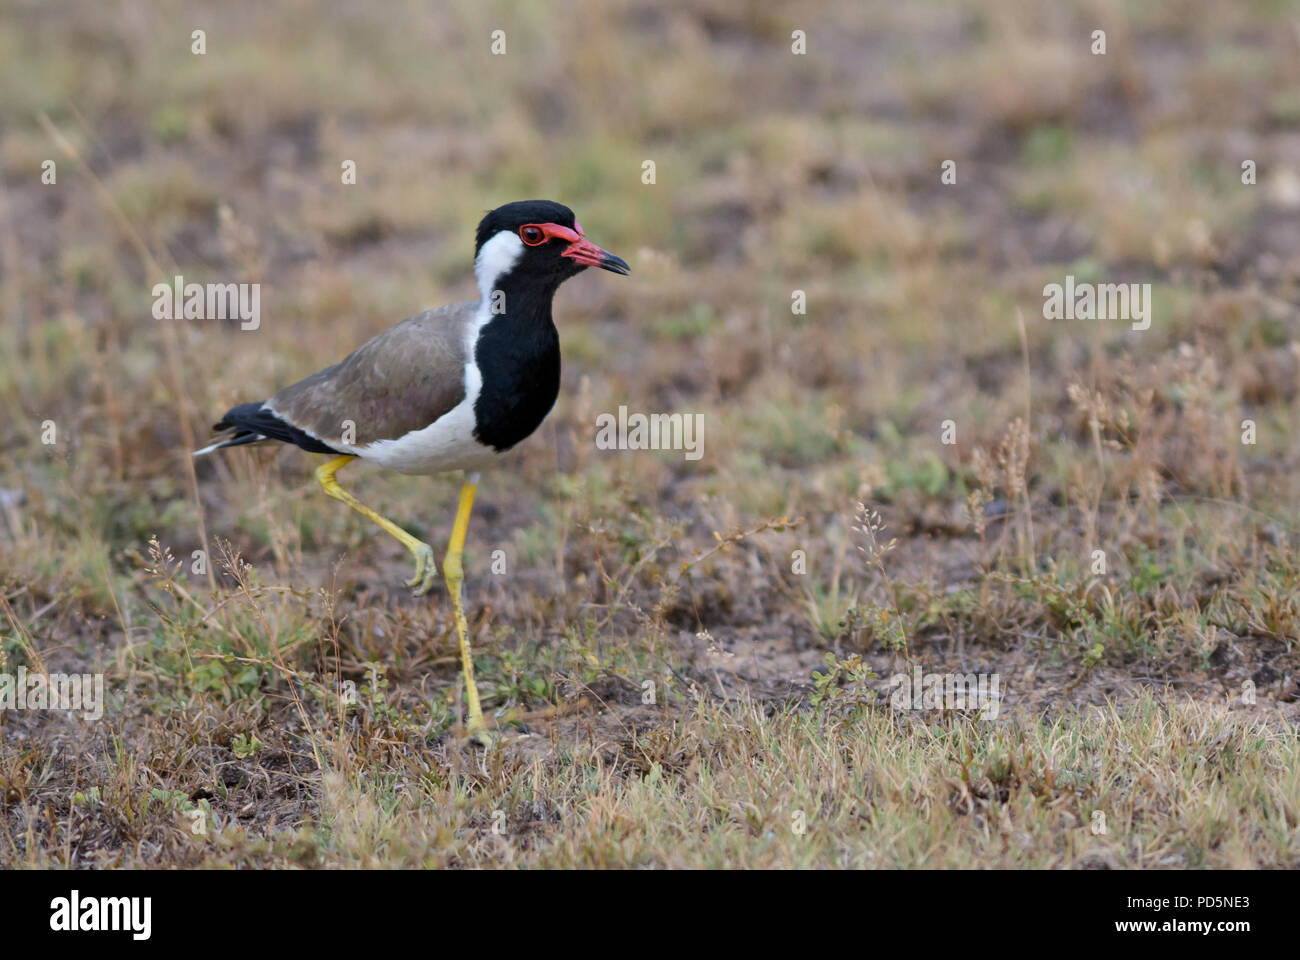 Red-wattled Lapwing - Vanellus indicus, large colored plover from Asian swamps and fresh waters. - Stock Image